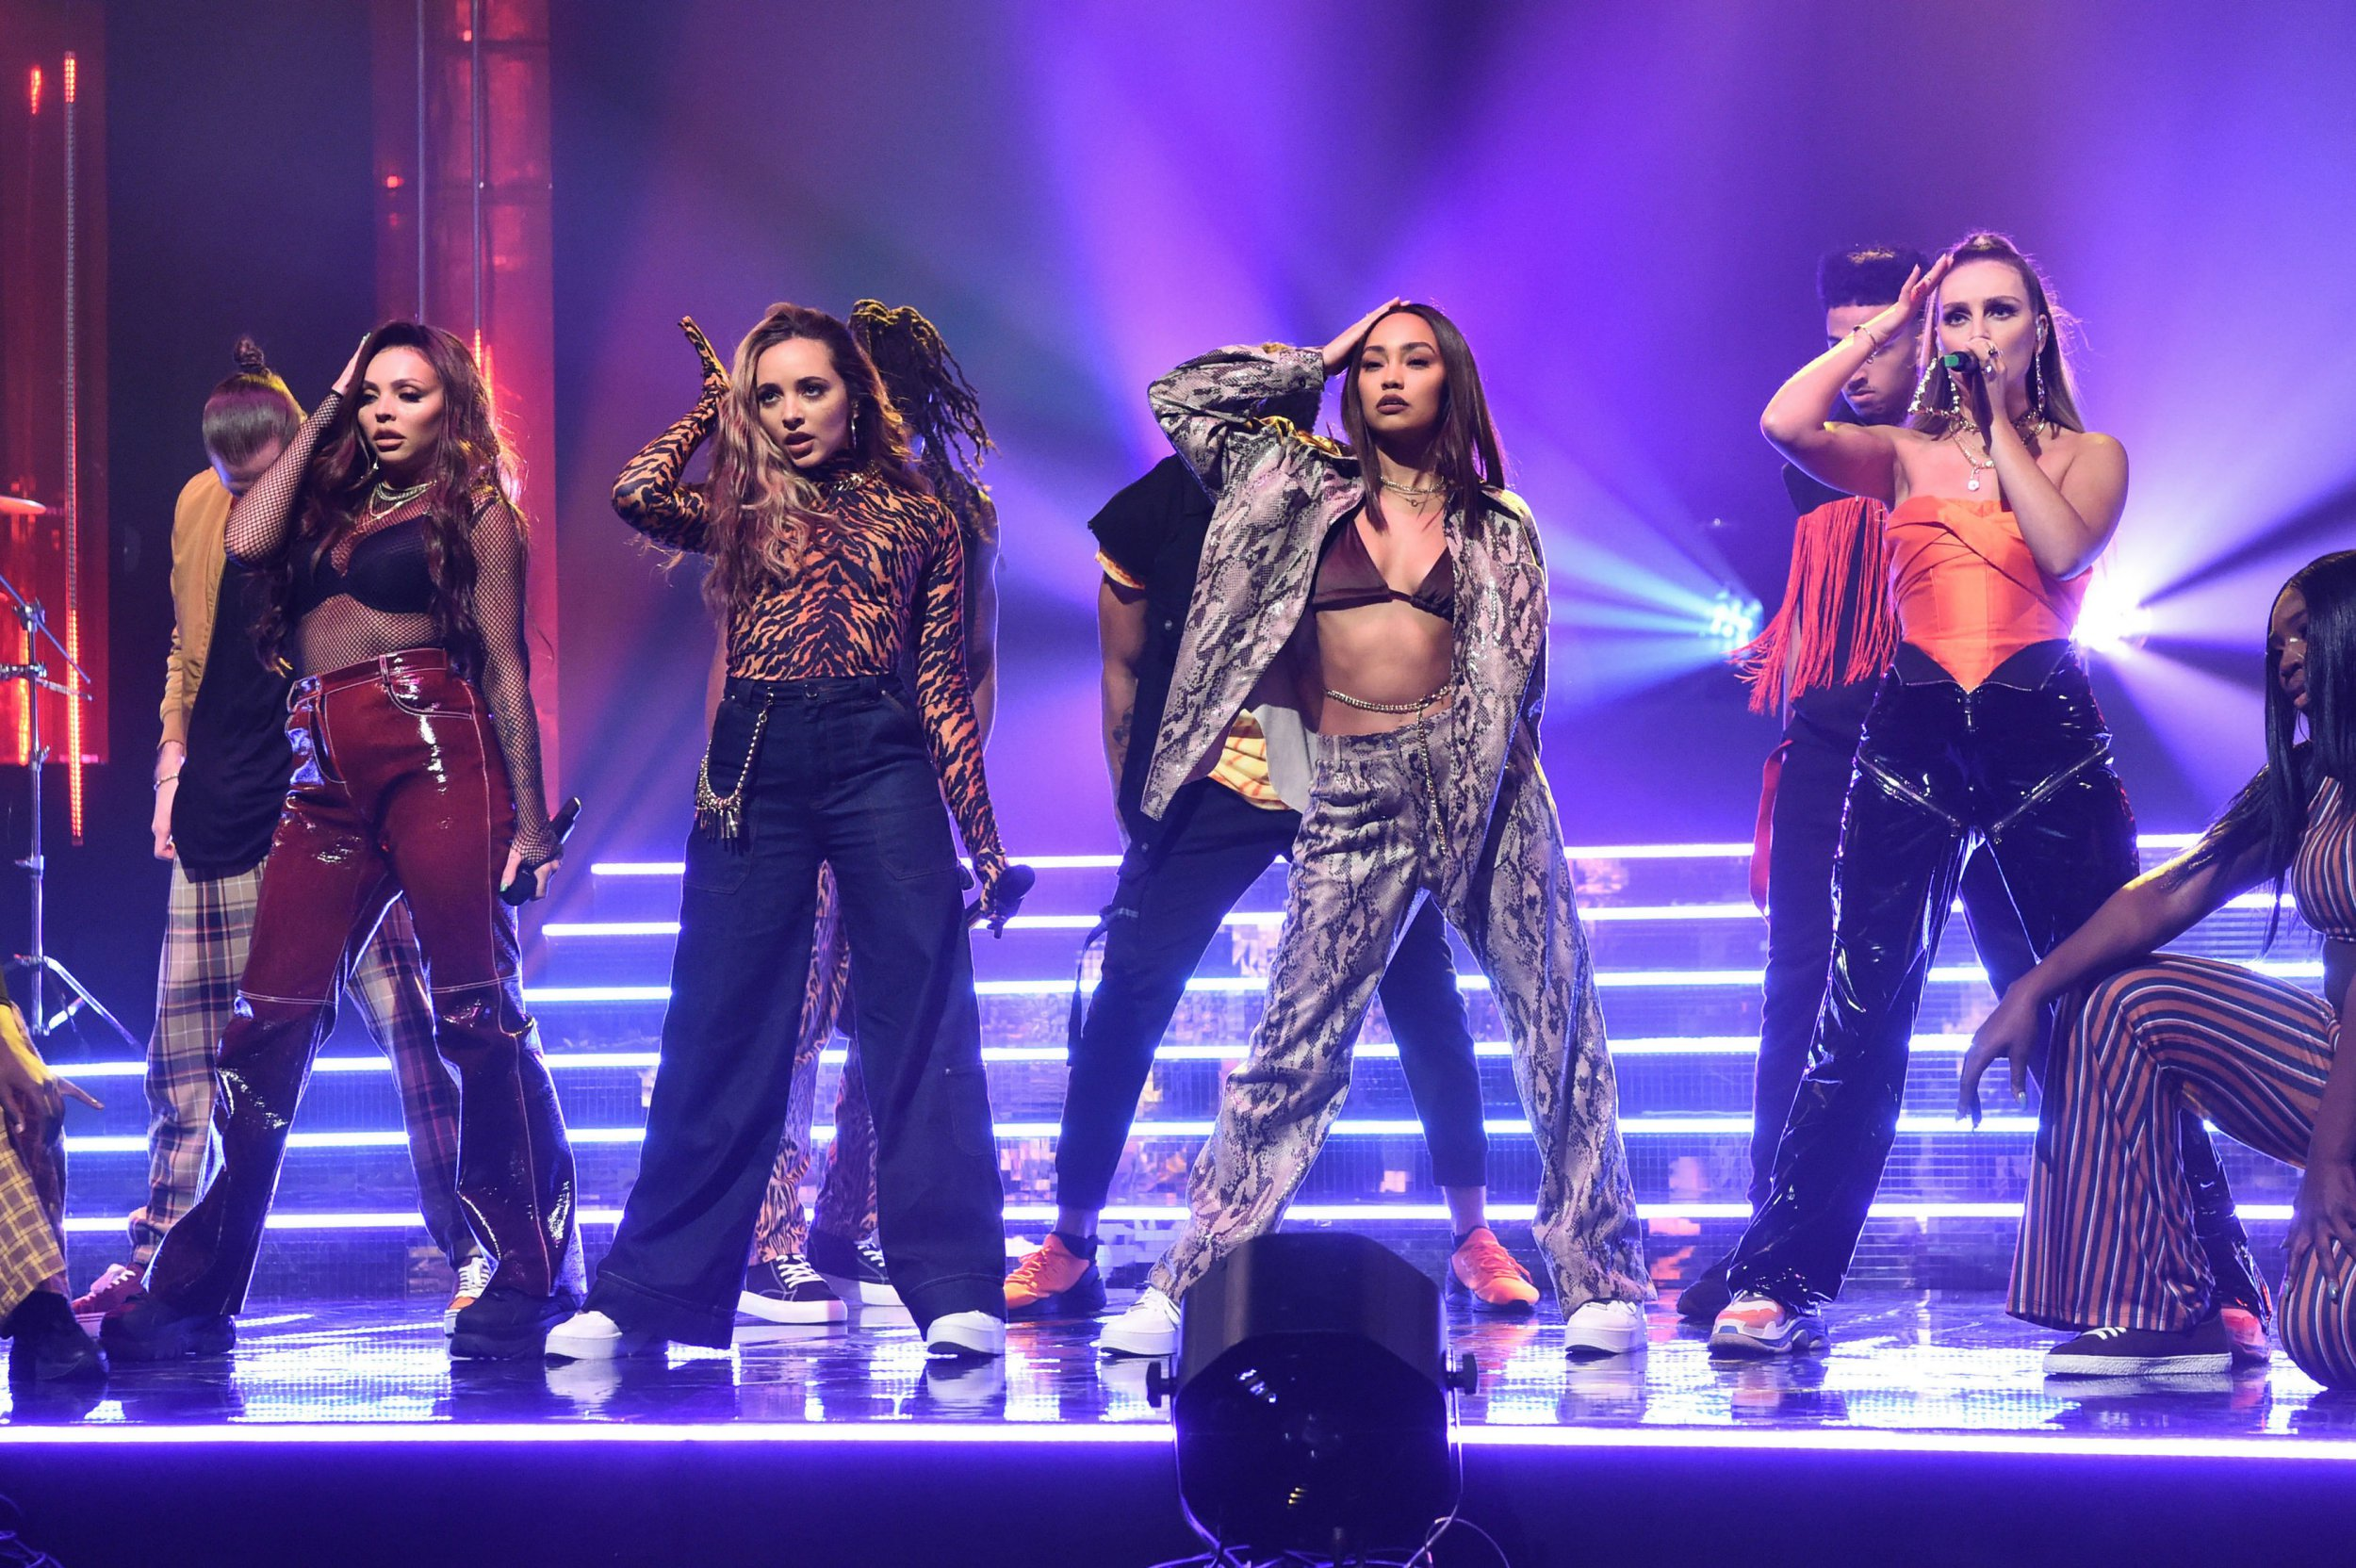 Little Mix, (left to right) Jesy Nelson, Jade Thirlwall, Leigh-Anne Pinnock and Perrie Edwards, during the filming of the Graham Norton Show at BBC Studioworks 6 Television Centre, Wood Lane, London, to be aired on BBC One on Friday evening. PRESS ASSOCIATION Photo. Issue date: Thursday December 13, 2018. Photo credit should read: PA Images on behalf of So TV